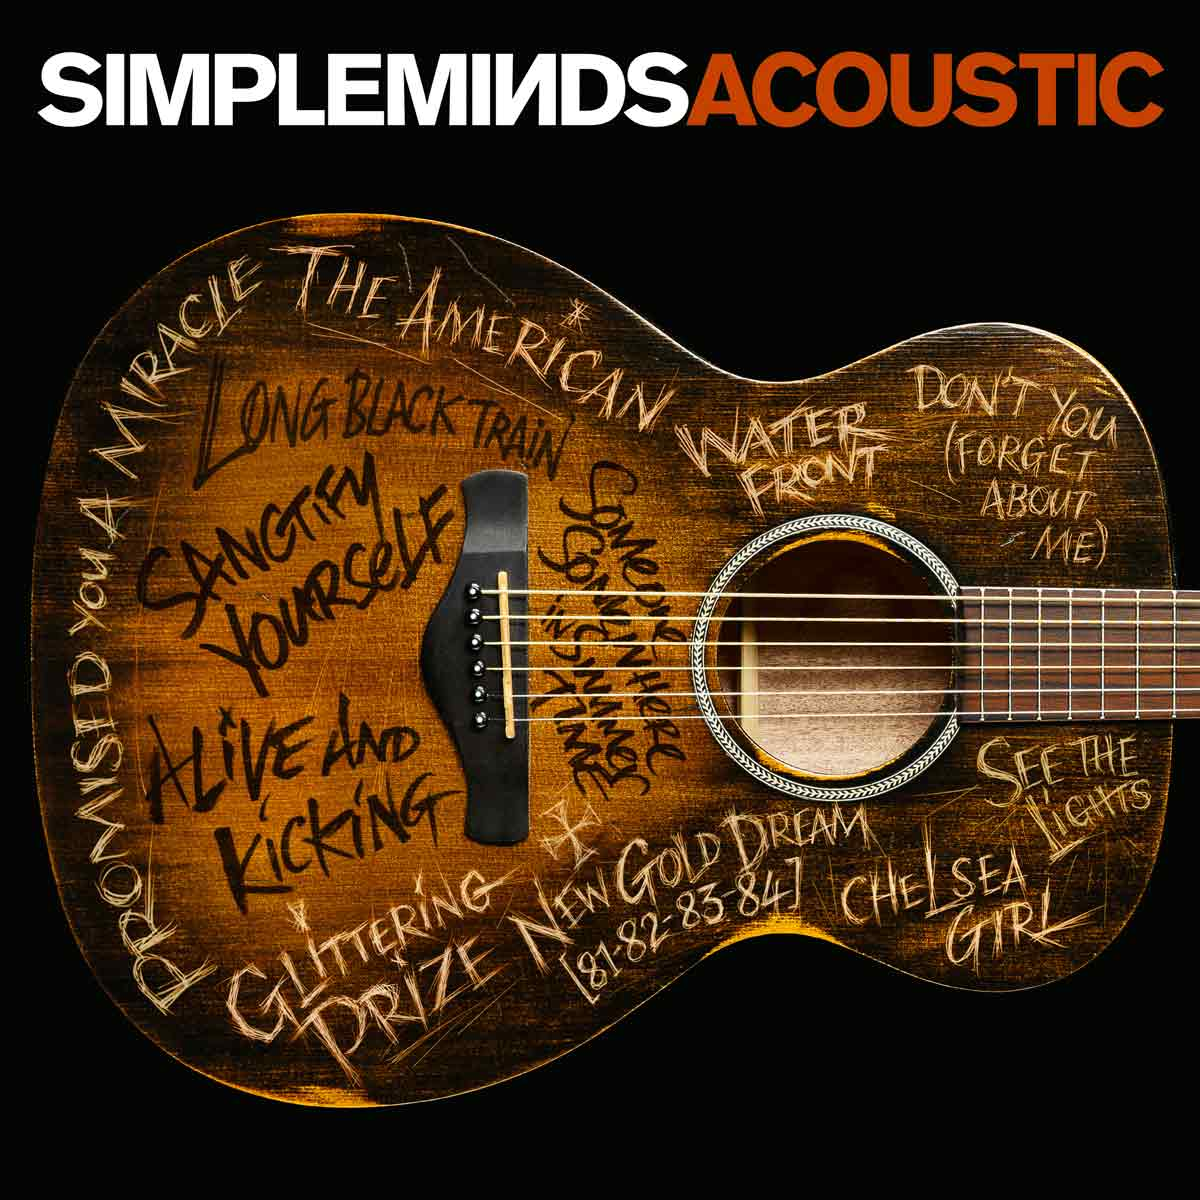 Book Of Love Cover Acoustic ~ Simple minds acoustic be subjective